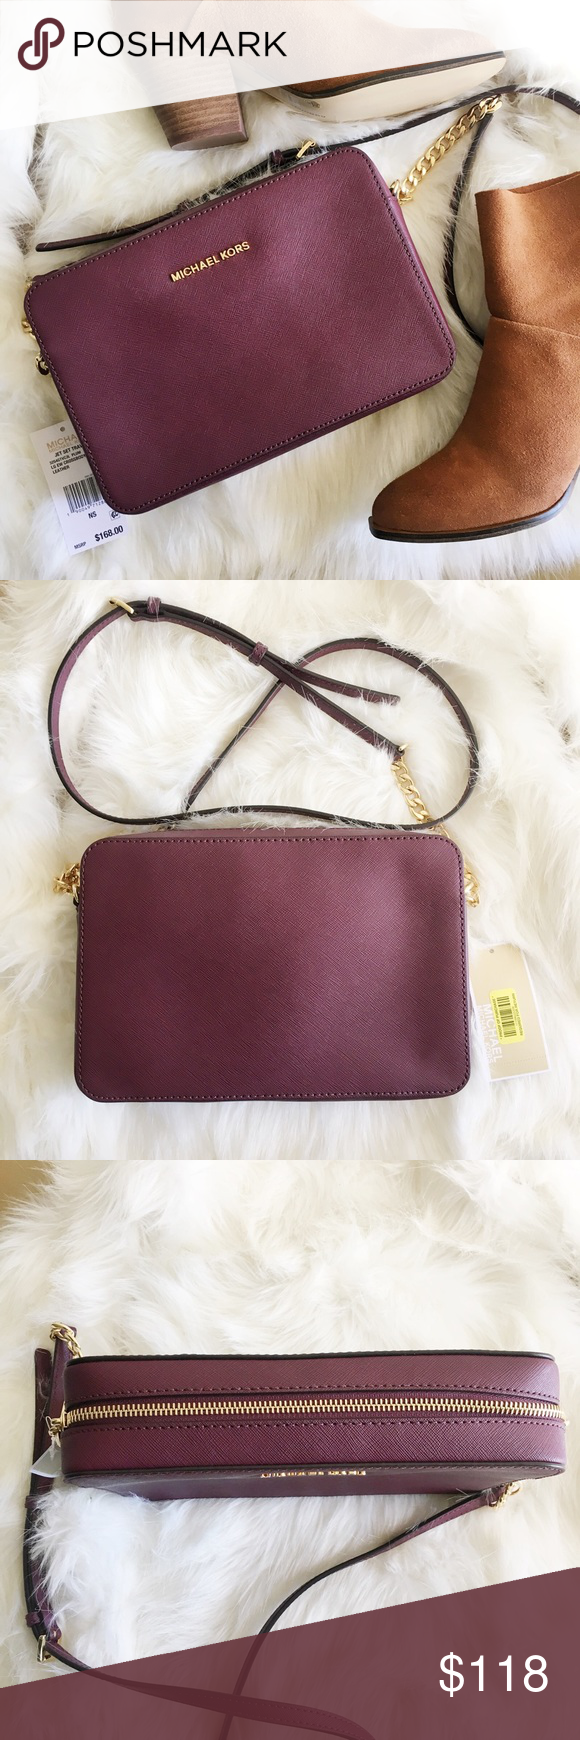 """Michael Kors Plum Jet Set Crossbody -Saffiano Leather -Adjustable Shoulder Strap -Two Interior Pouch Pockets -9 x 4 x .75"""" -Zip Fastening -Fully Lined -Imported MICHAEL Michael Kors Bags Crossbody Bags"""